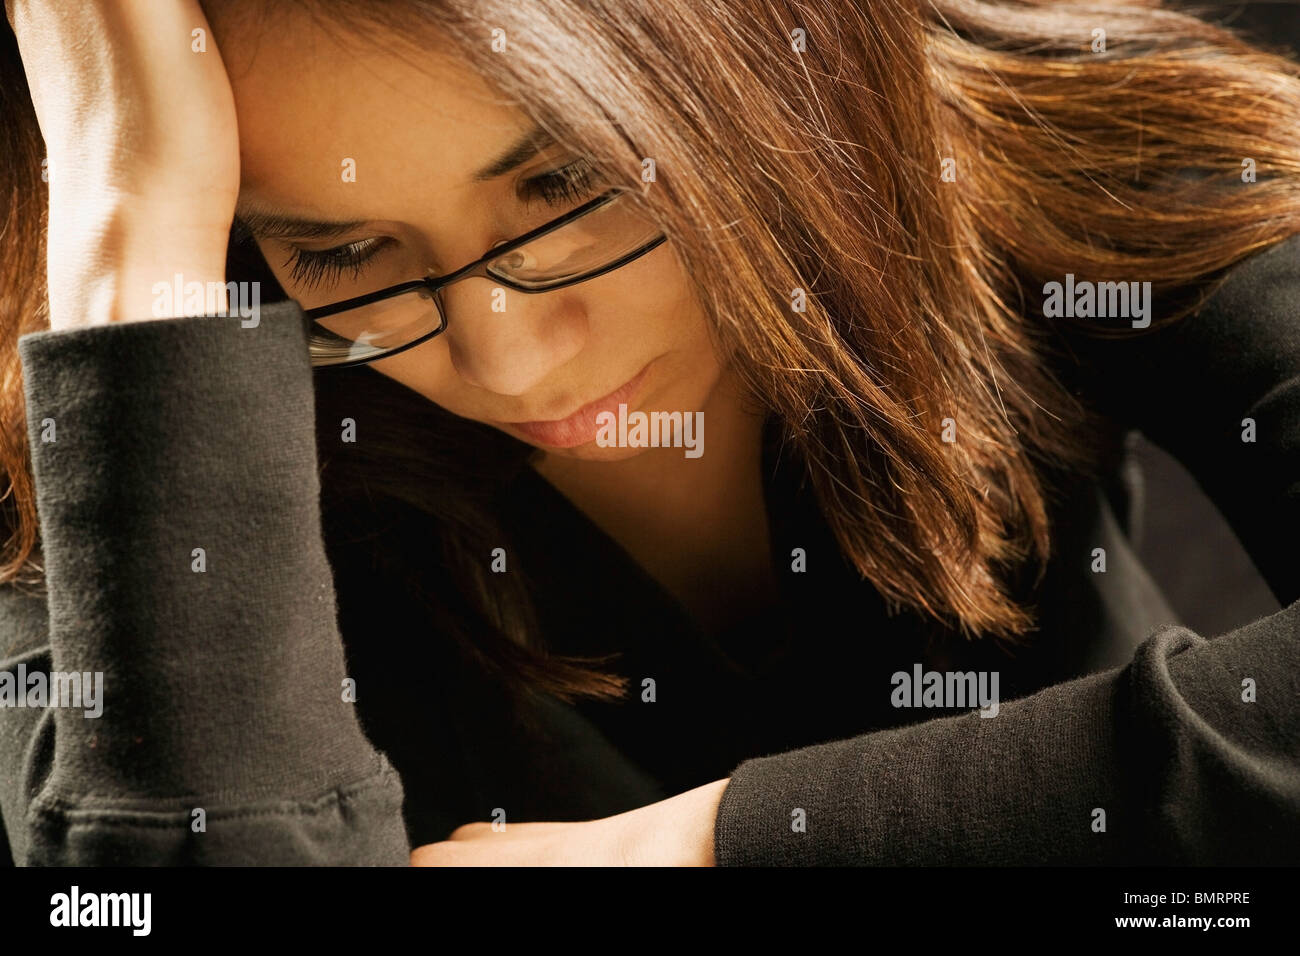 A Young Woman Looking Sad - Stock Image